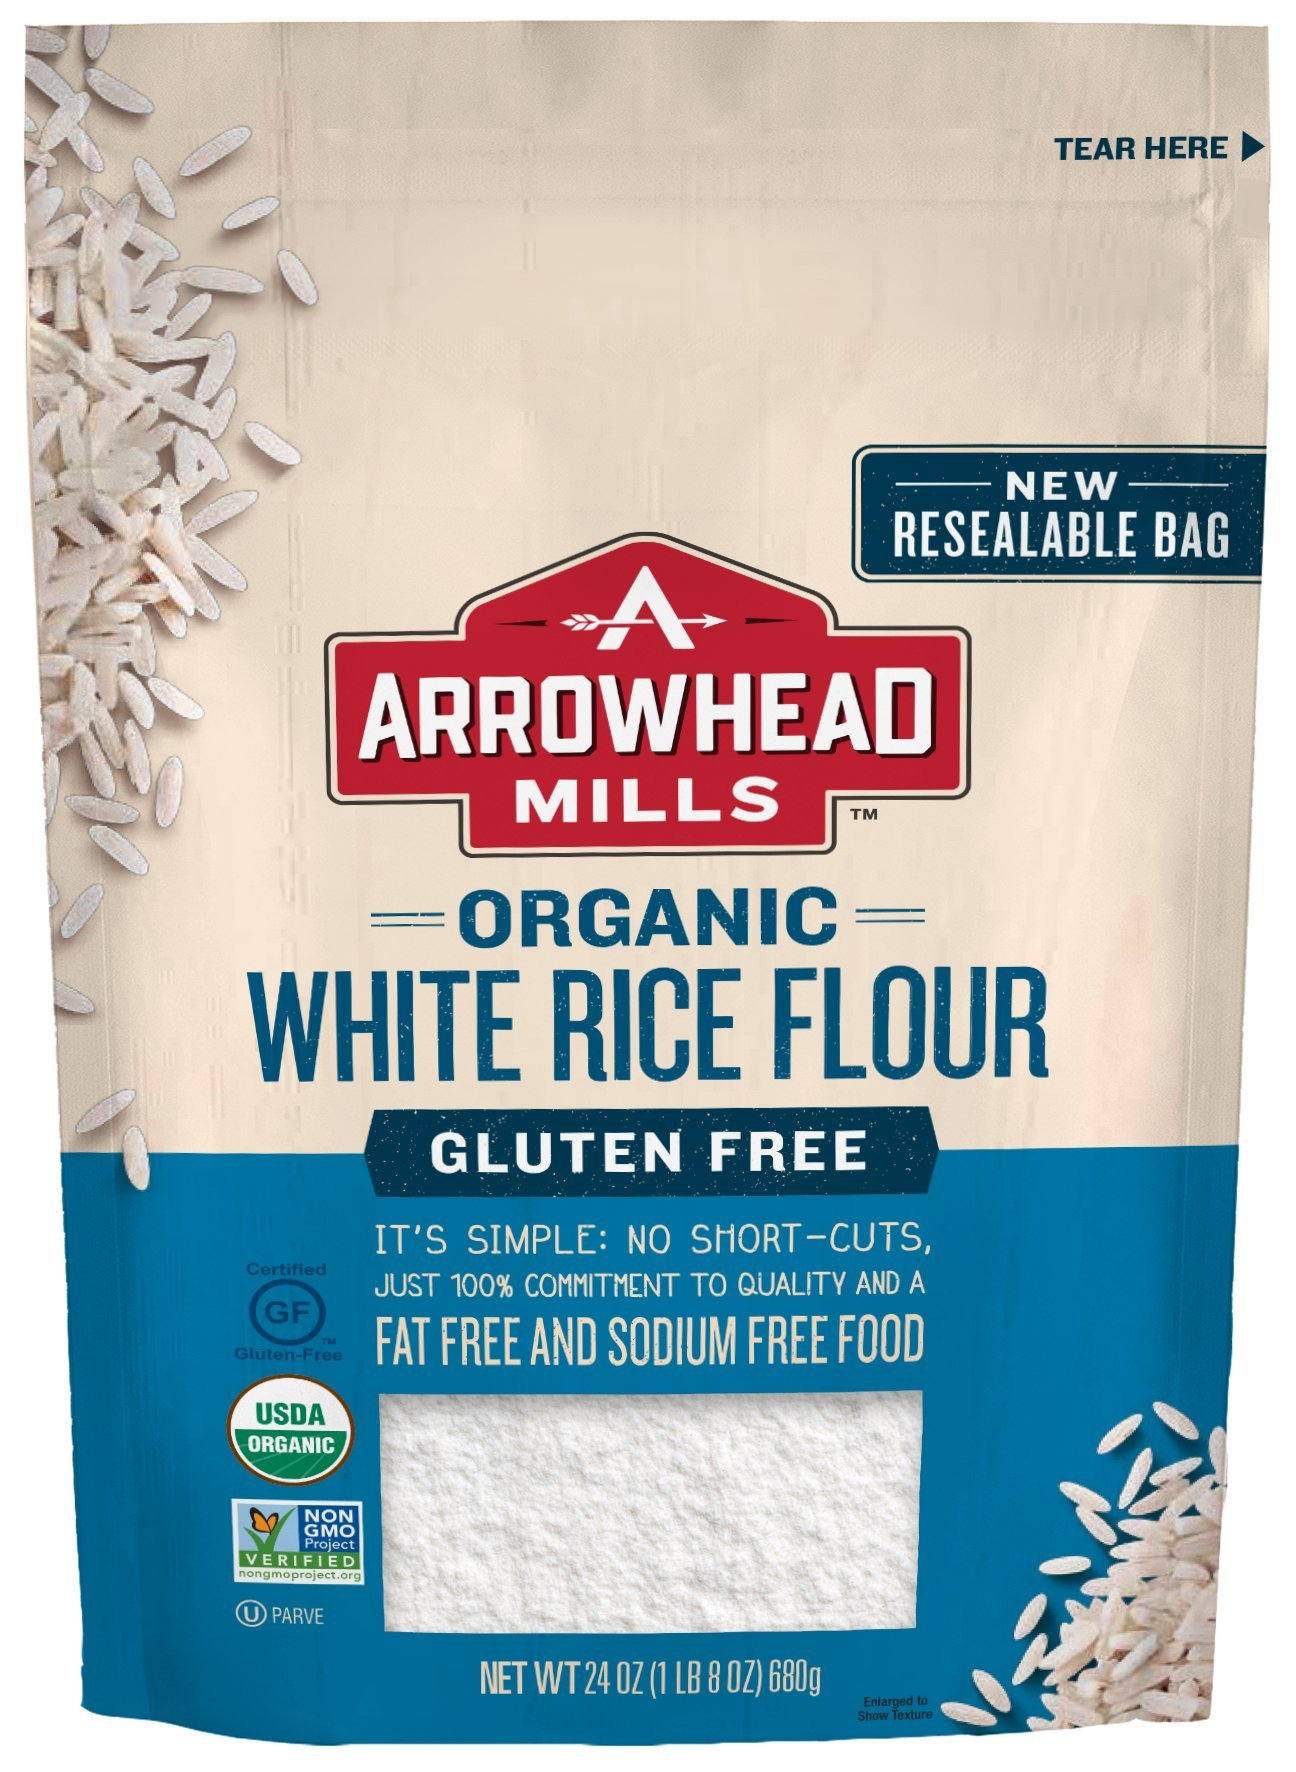 Arrowhead Mills Organic Gluten-Free White Rice Flour, 24 oz. Bag (Pack of 6) by Arrowhead Mills